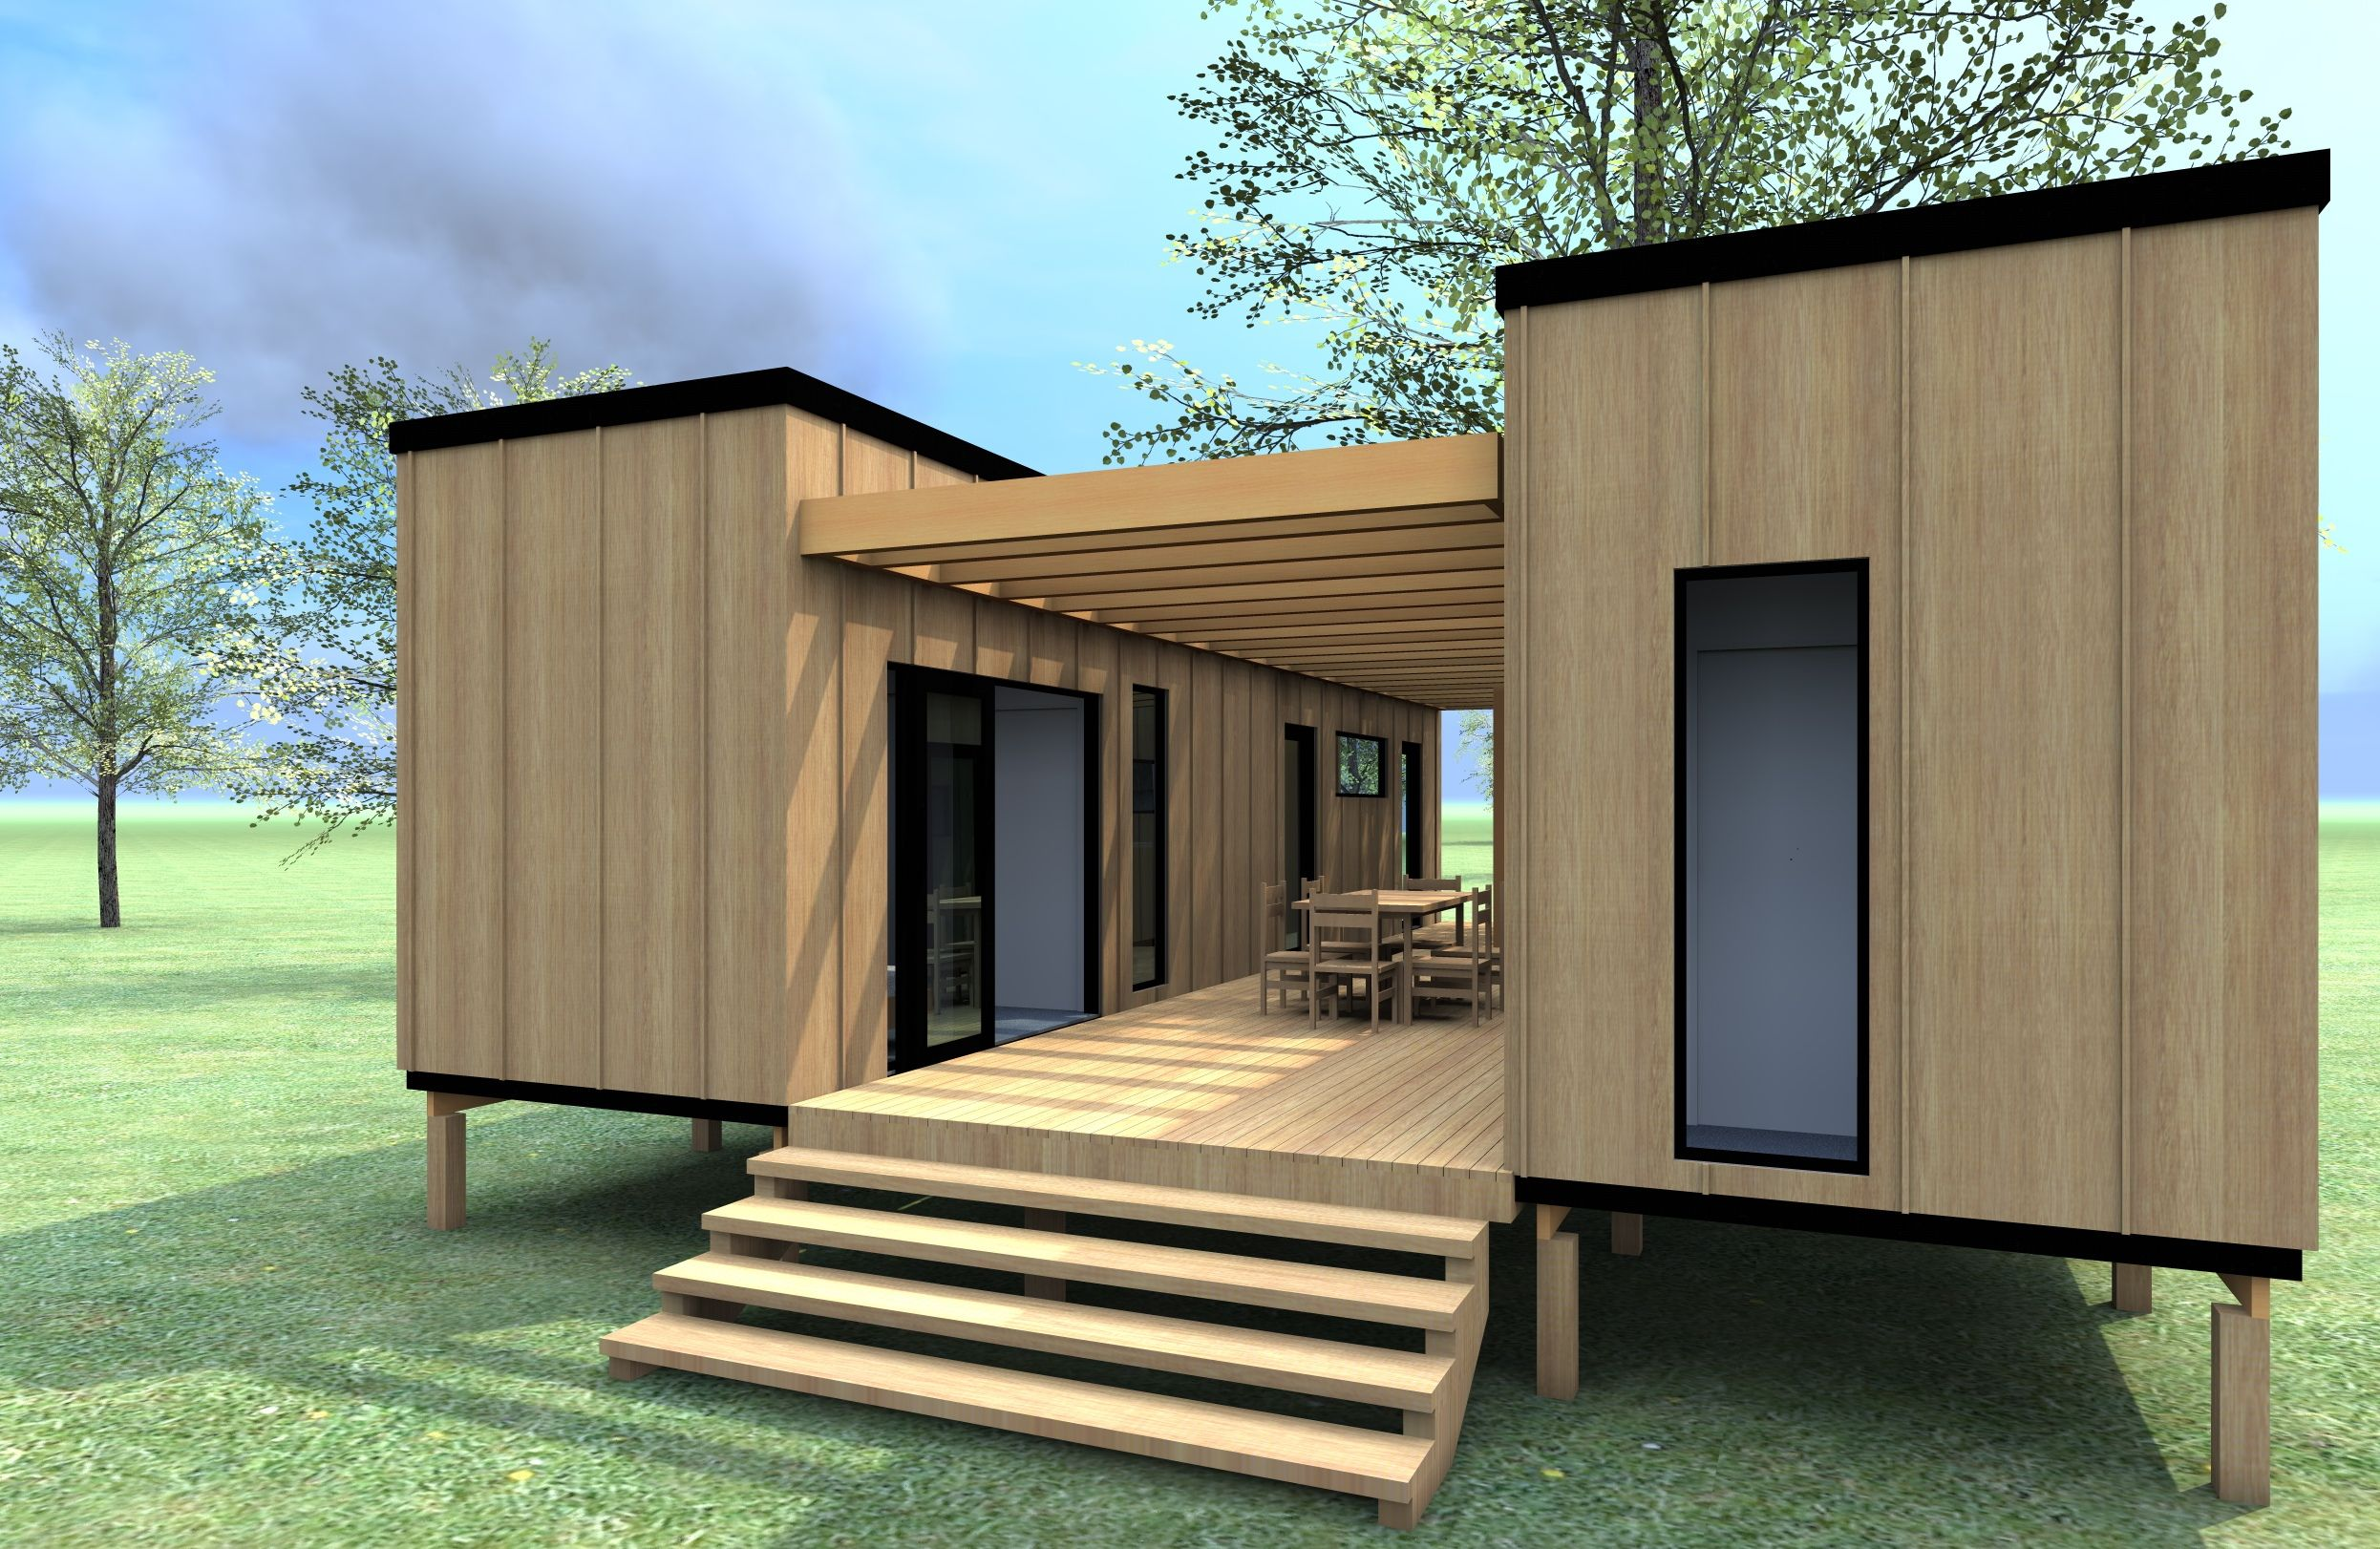 Container Haus Bauplan Trinidad By Cubular Container Buildings Tiny House Living Otra